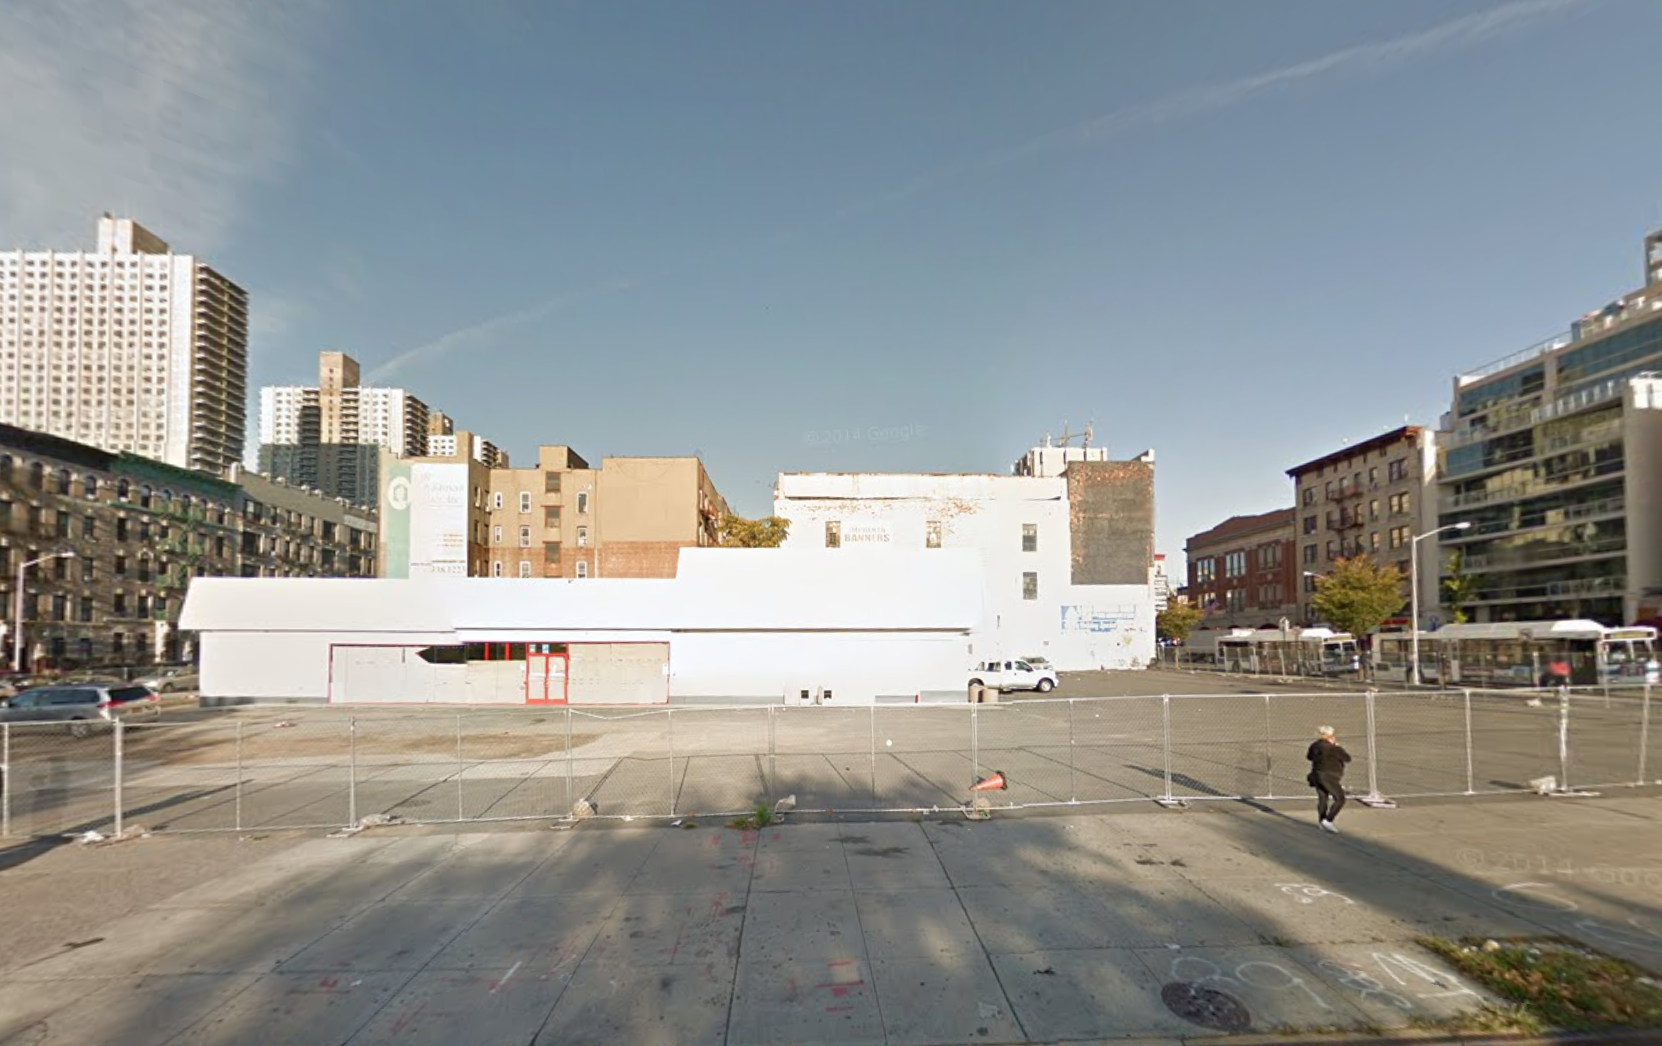 2420 Amsterdam Avenue in 2014, image via Google Maps